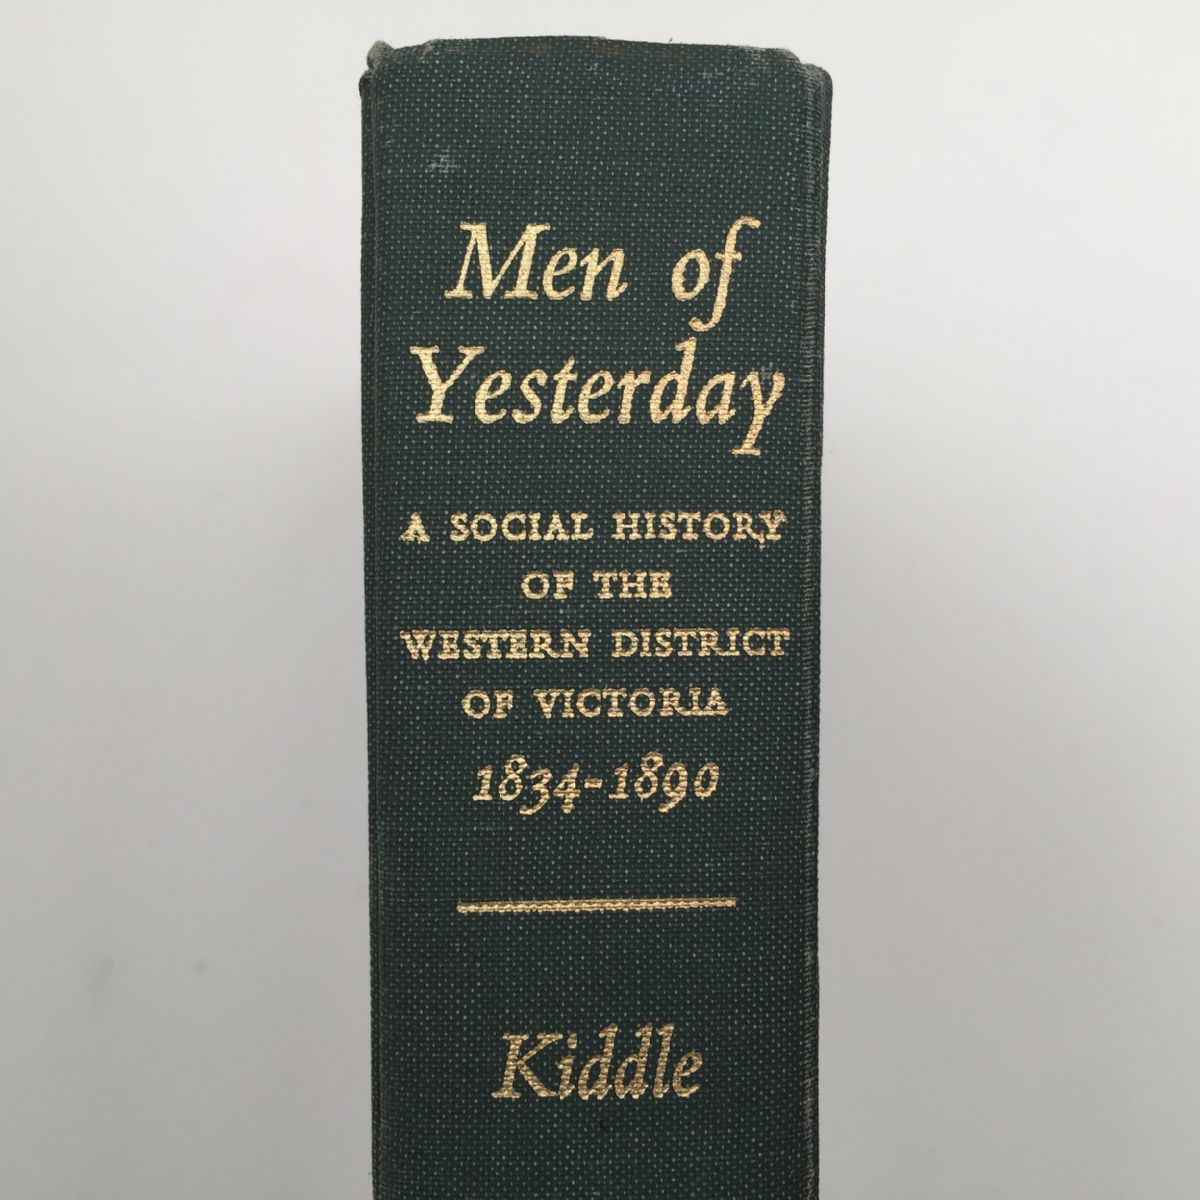 Men Of Yesterday: A Social History of the Western District Of Victoria 1834-1890